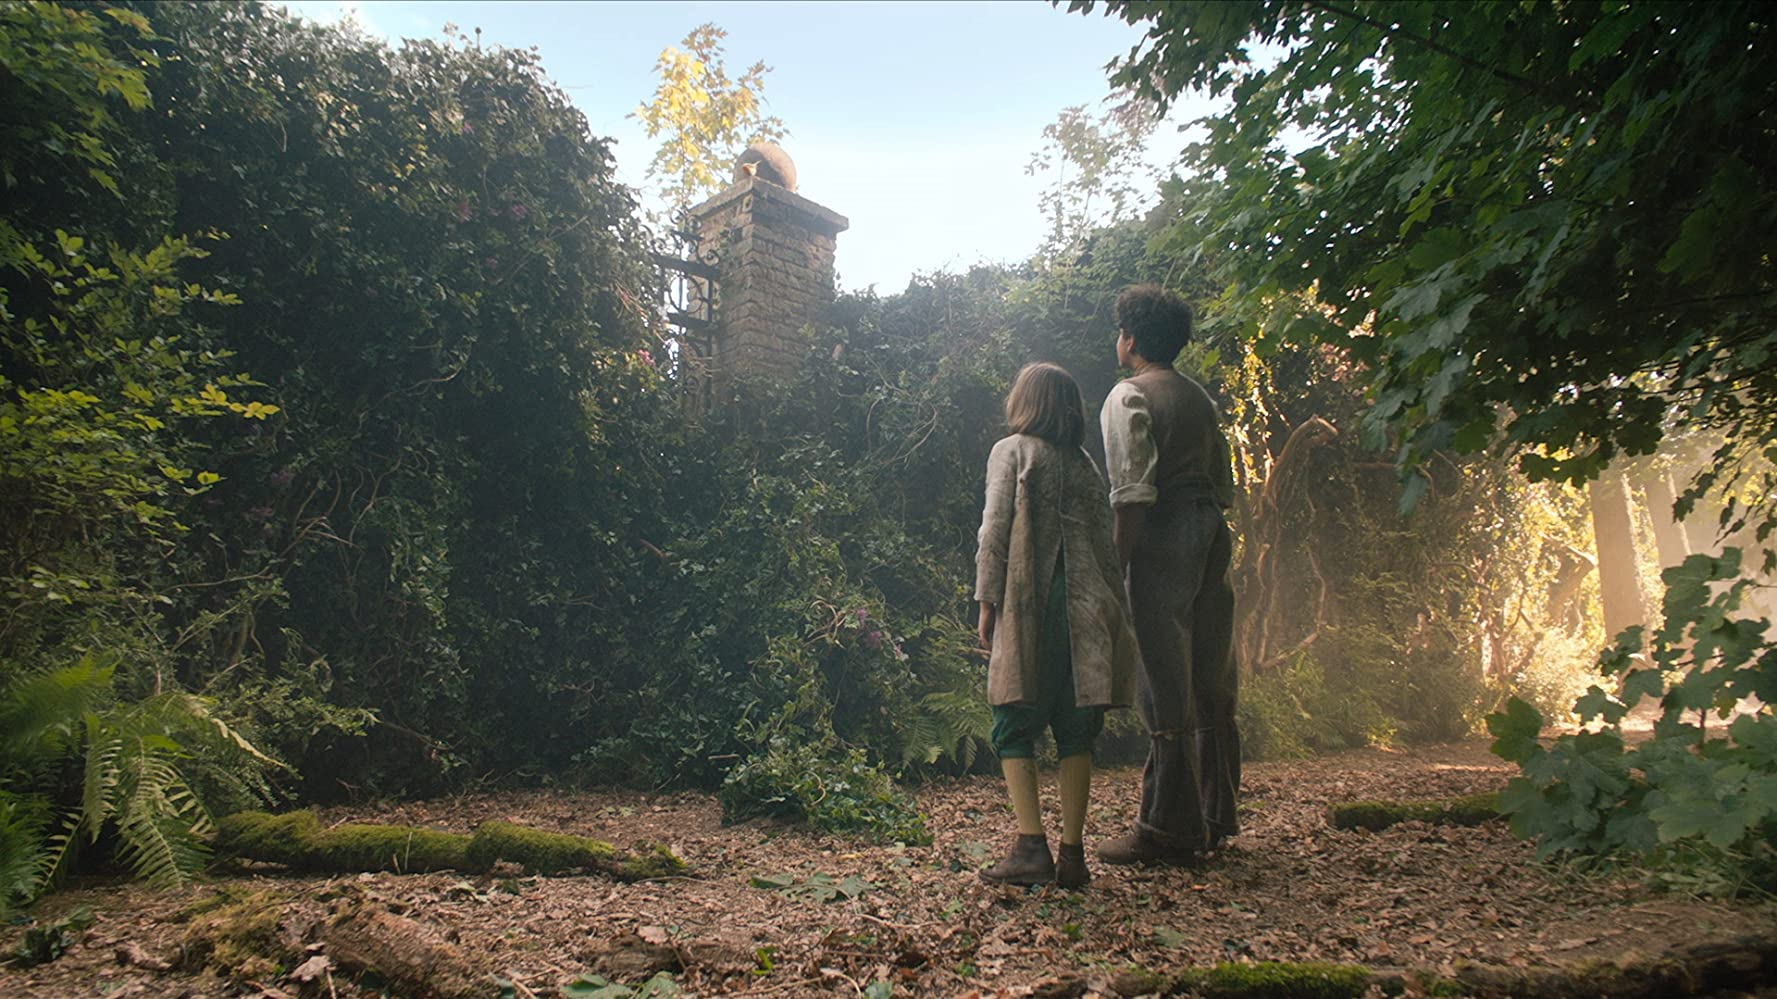 The Secret Garden Movie Review A Different And Darker Version Of The Classic Story As The Bunny Hops